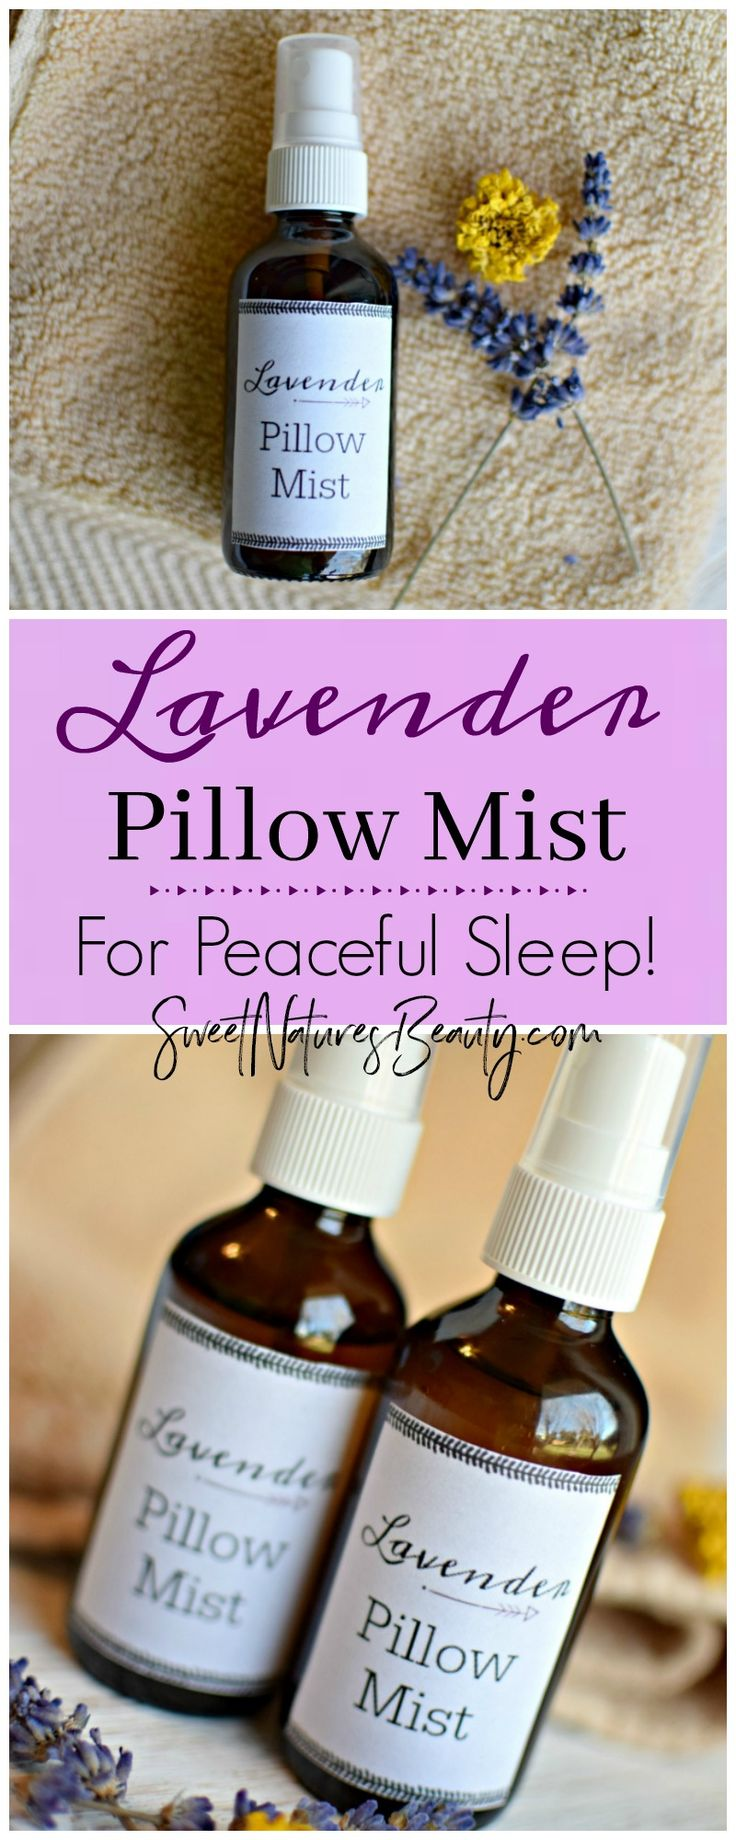 Use this DIY Lavender Pillow Mist in your bedroom right before going to sleep. The DIY lavender pillow mist recipe will give you the most peaceful sleep ever! With essential oils you can't go wrong with this homemade DIY Lavender Pillow Mist. Use as a linen spray, pillow spray, room spray, or car spray for aromatherapy purposes the natural way!